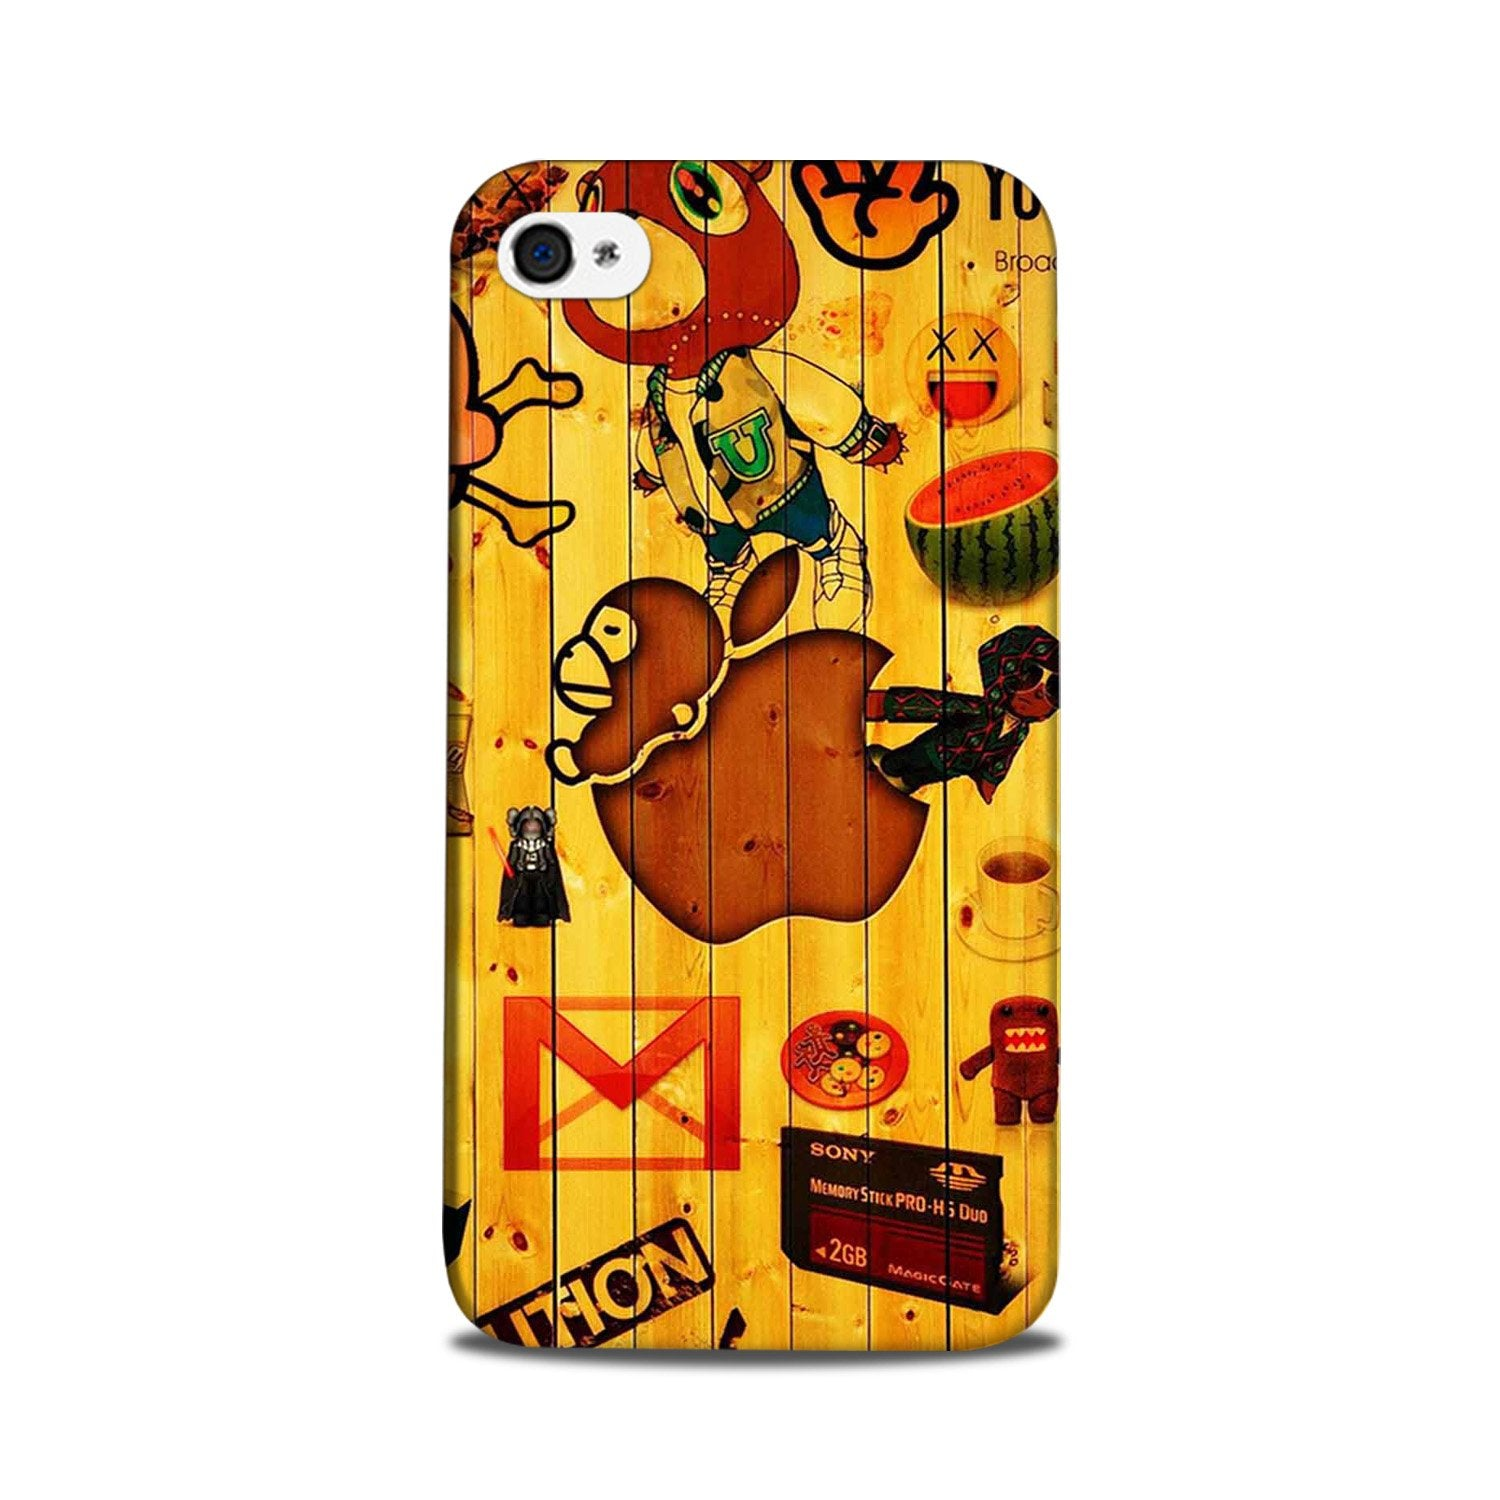 Wooden Texture Mobile Back Case for iPhone 5/ 5s  (Design - 367)